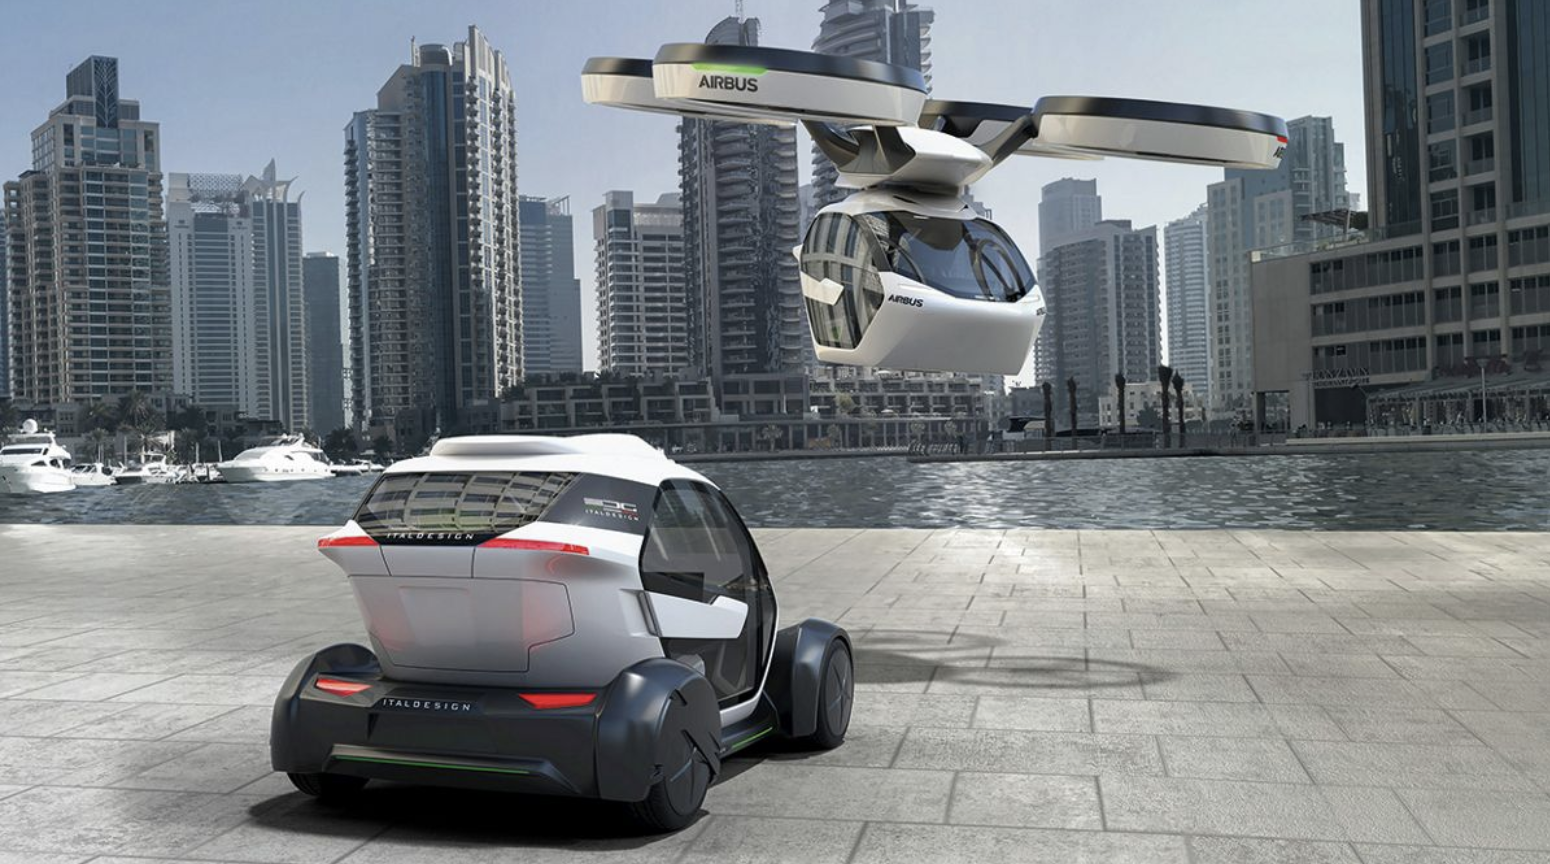 The Airbus Pop.Up ground-and-air concept vehicle